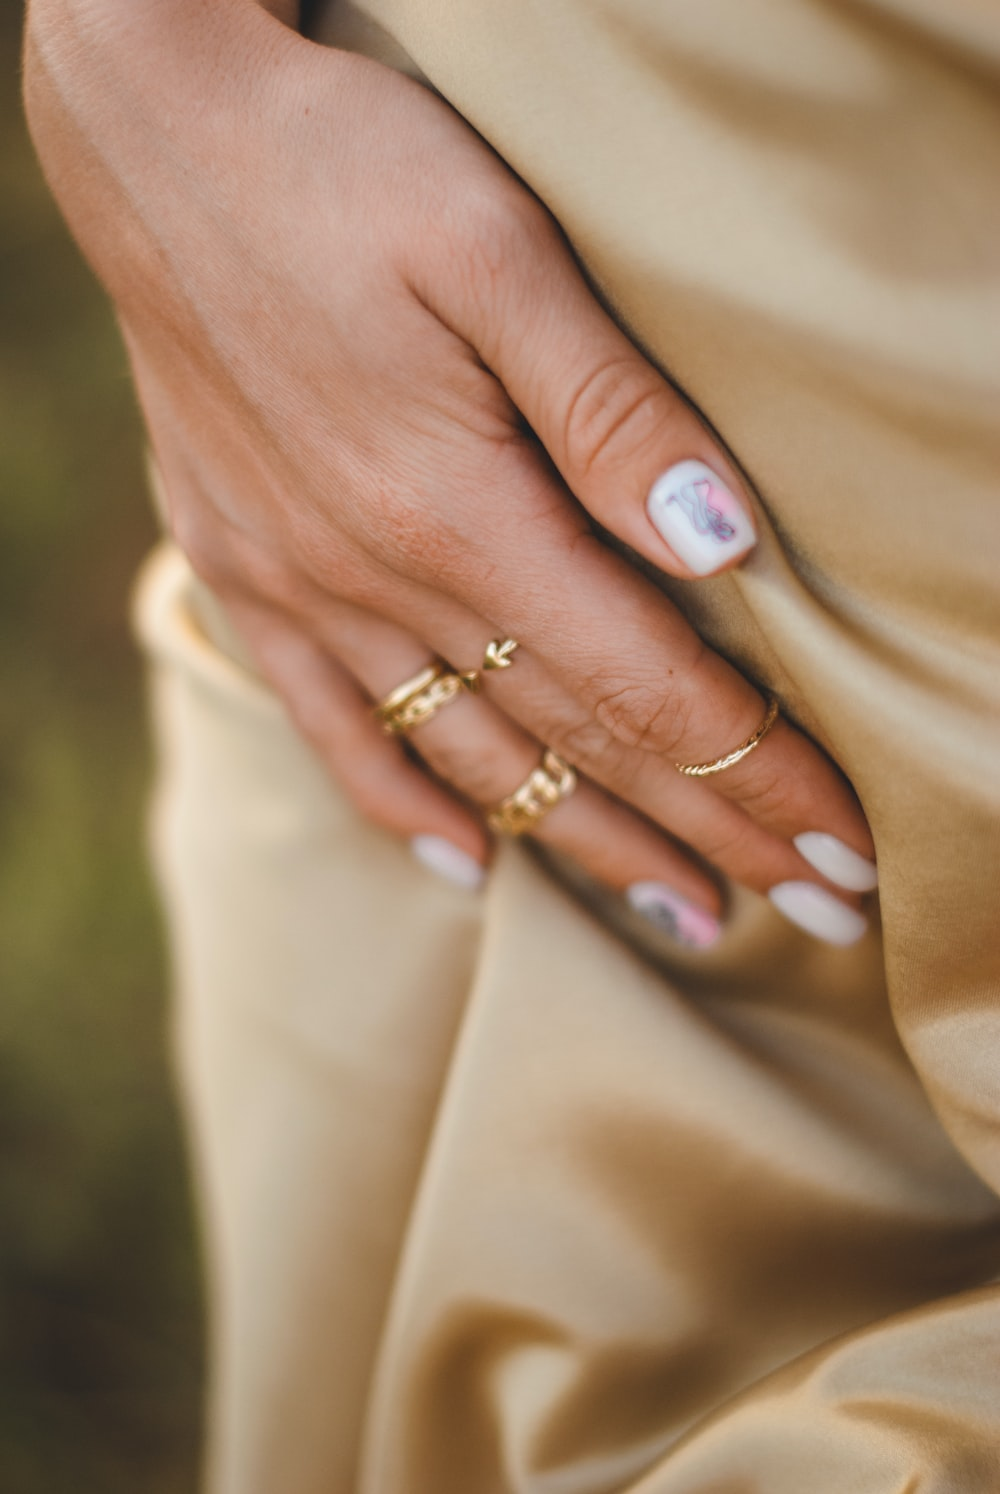 person wearing gold ring with blue stone